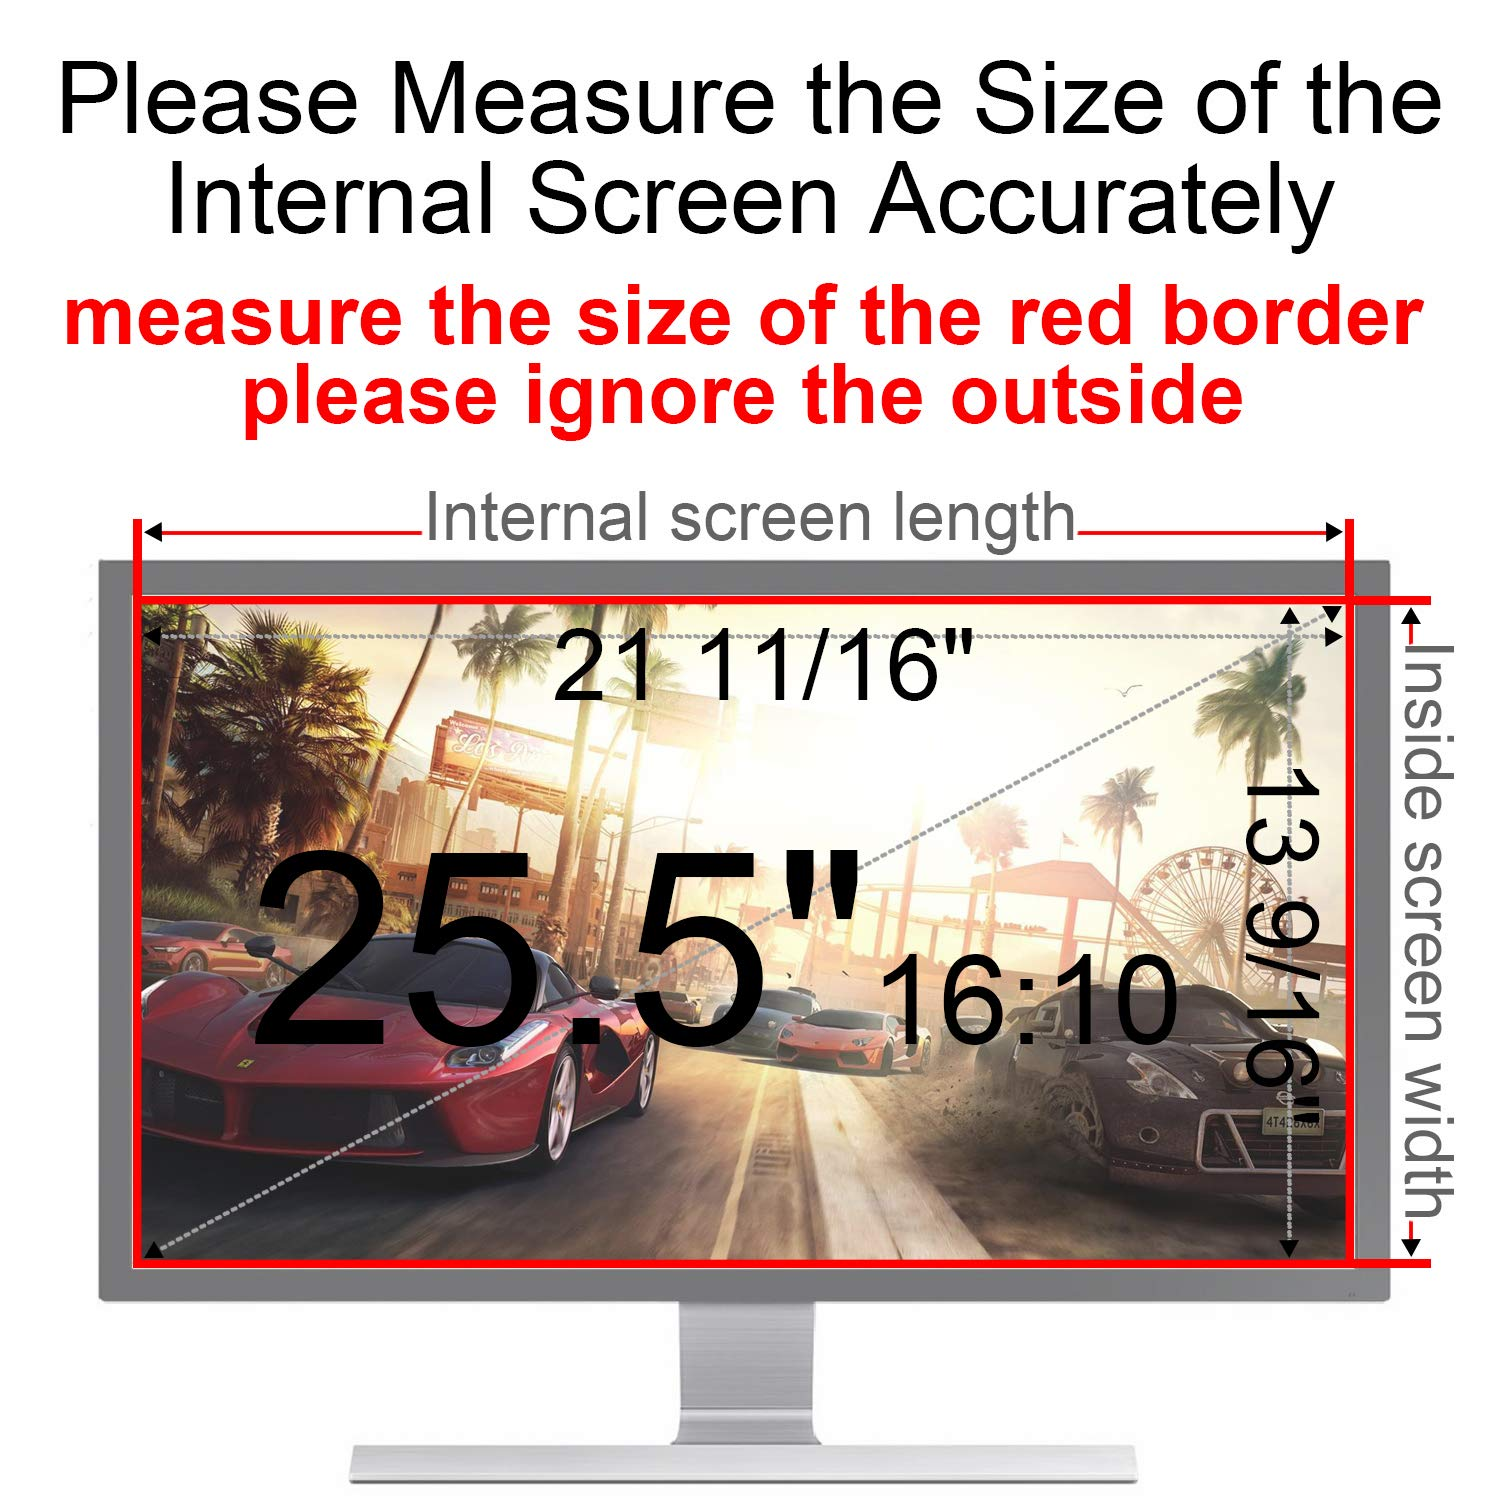 MAYAMANG Privacy Screen Protector 25.5 Inch 16:10 Monitor, Privacy Filter for Widescreen PC Computer, Monitor Privacy Screen 25.5 Inch, Anti-Glare Computer Privacy Screen, Monitor Protector by MAYAMANG (Image #3)